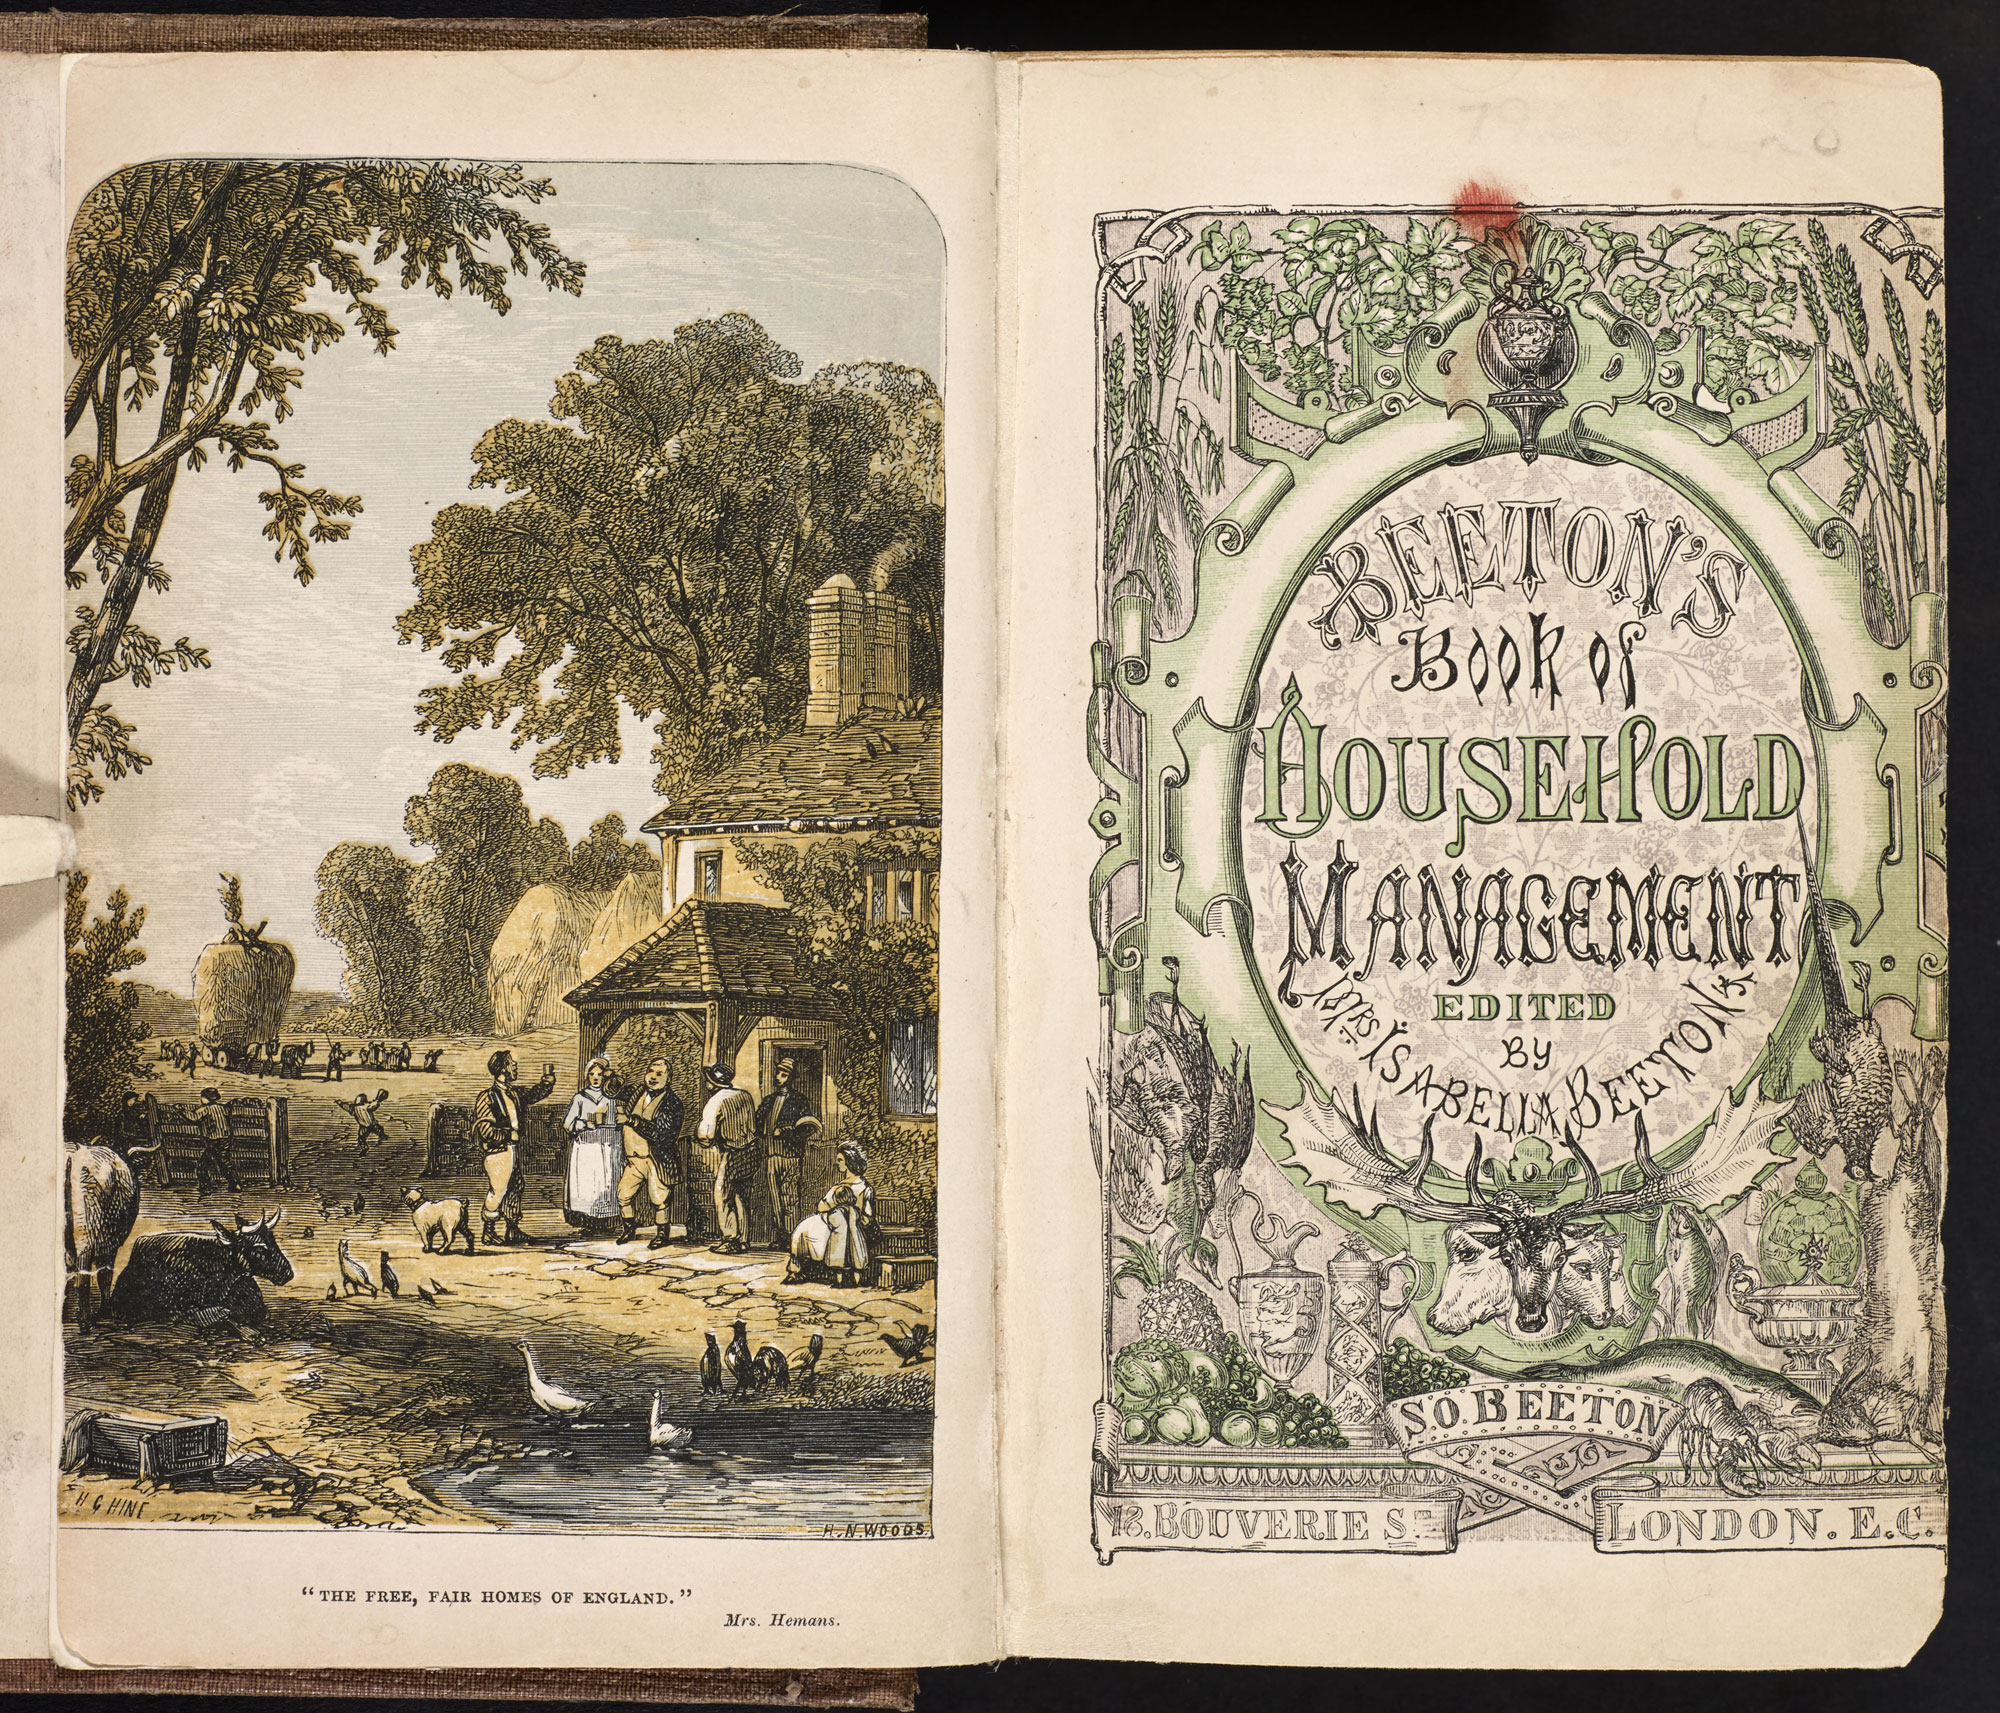 Beeton's Book of Household Management [page: frontispiece and title page]